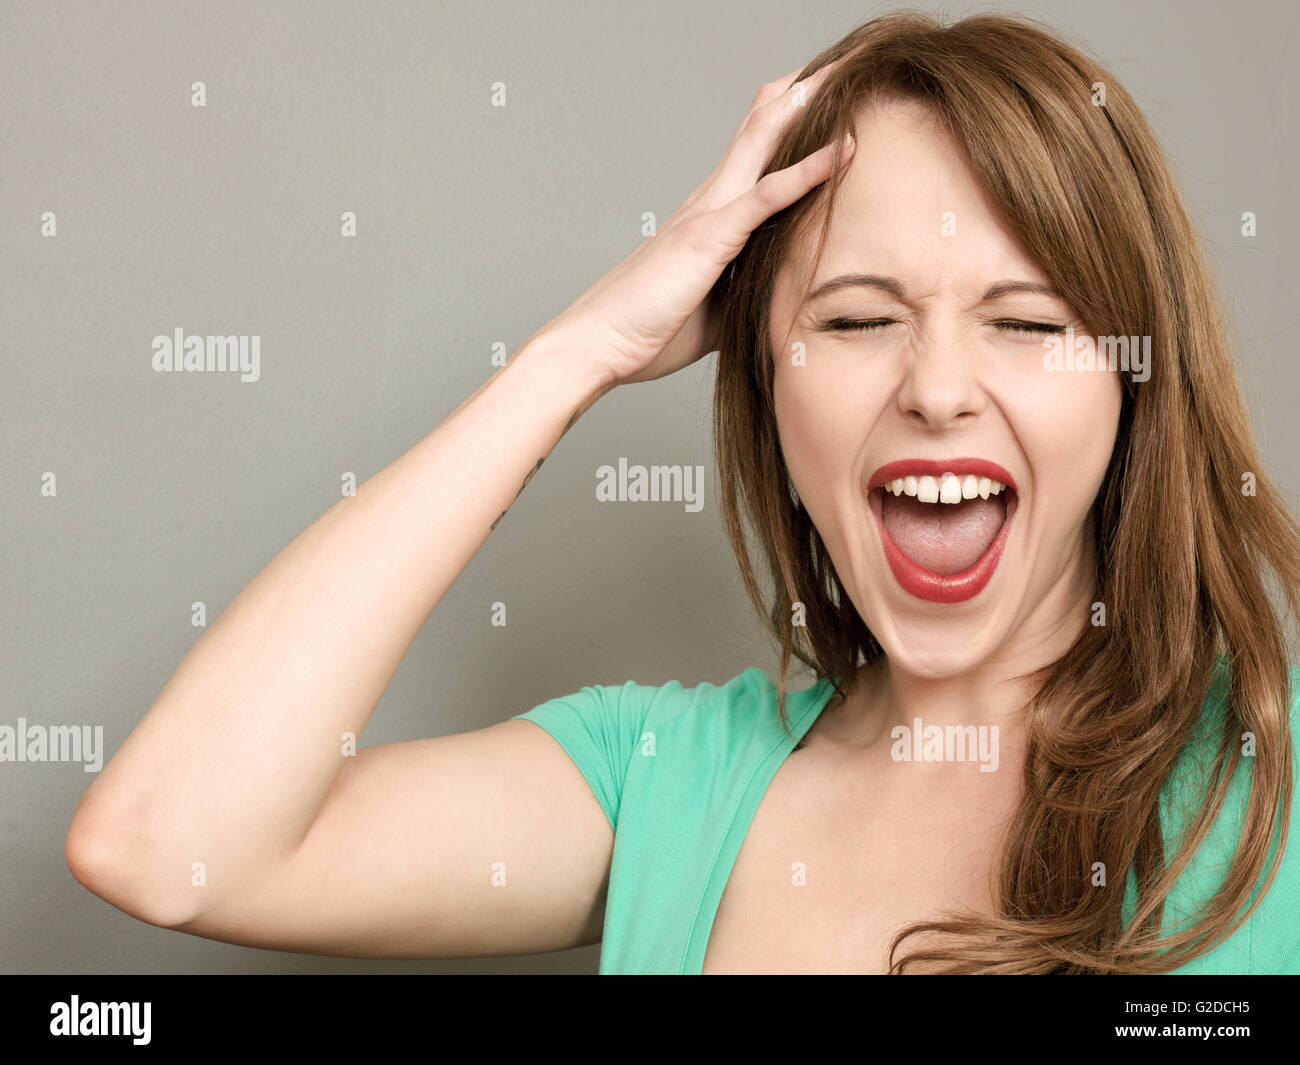 Portrait of a Frustrated Angry Woman Screaming in a Temper or Tantrum - Stock Image